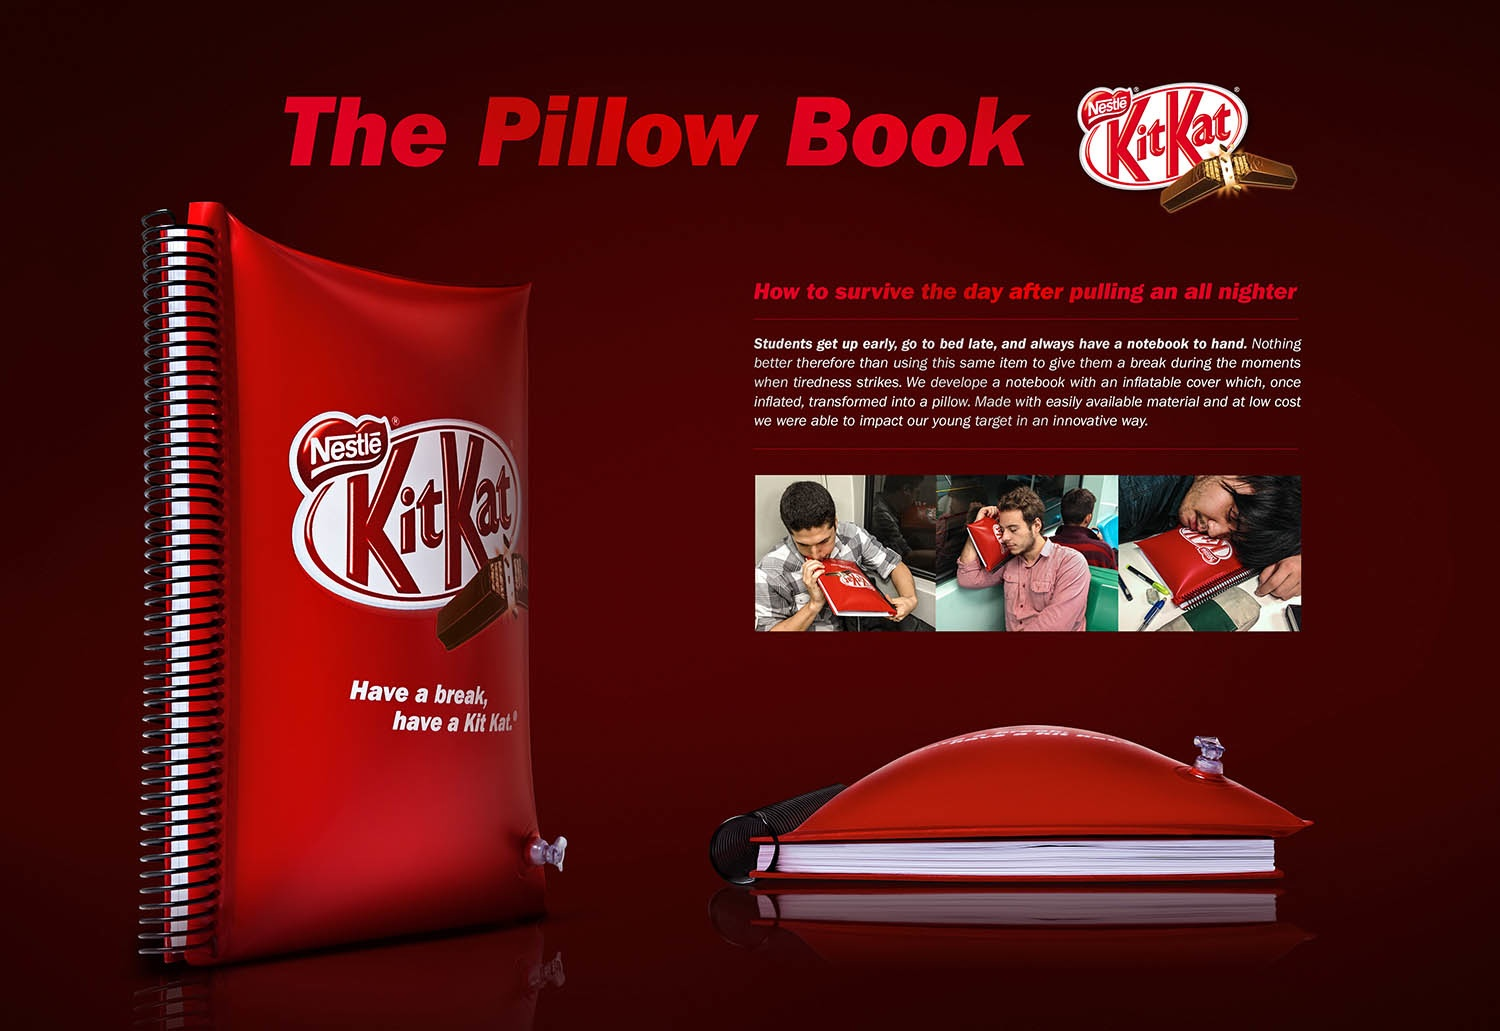 pillow book kit kat